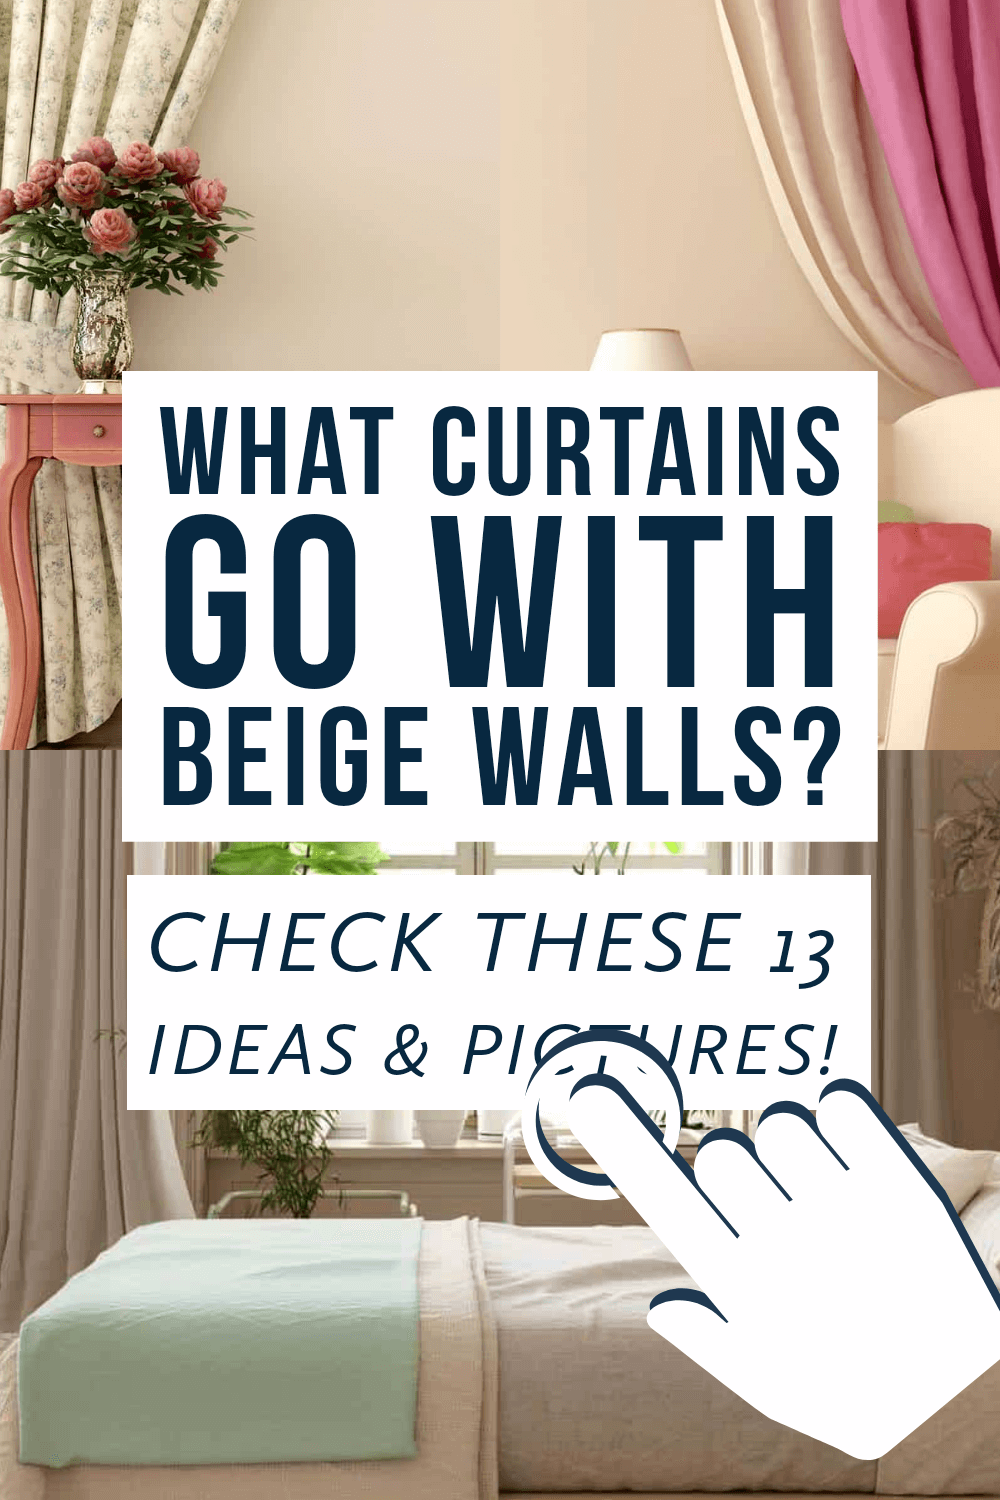 What curtains that go with beige walls? Check these 13 ideas and pictures